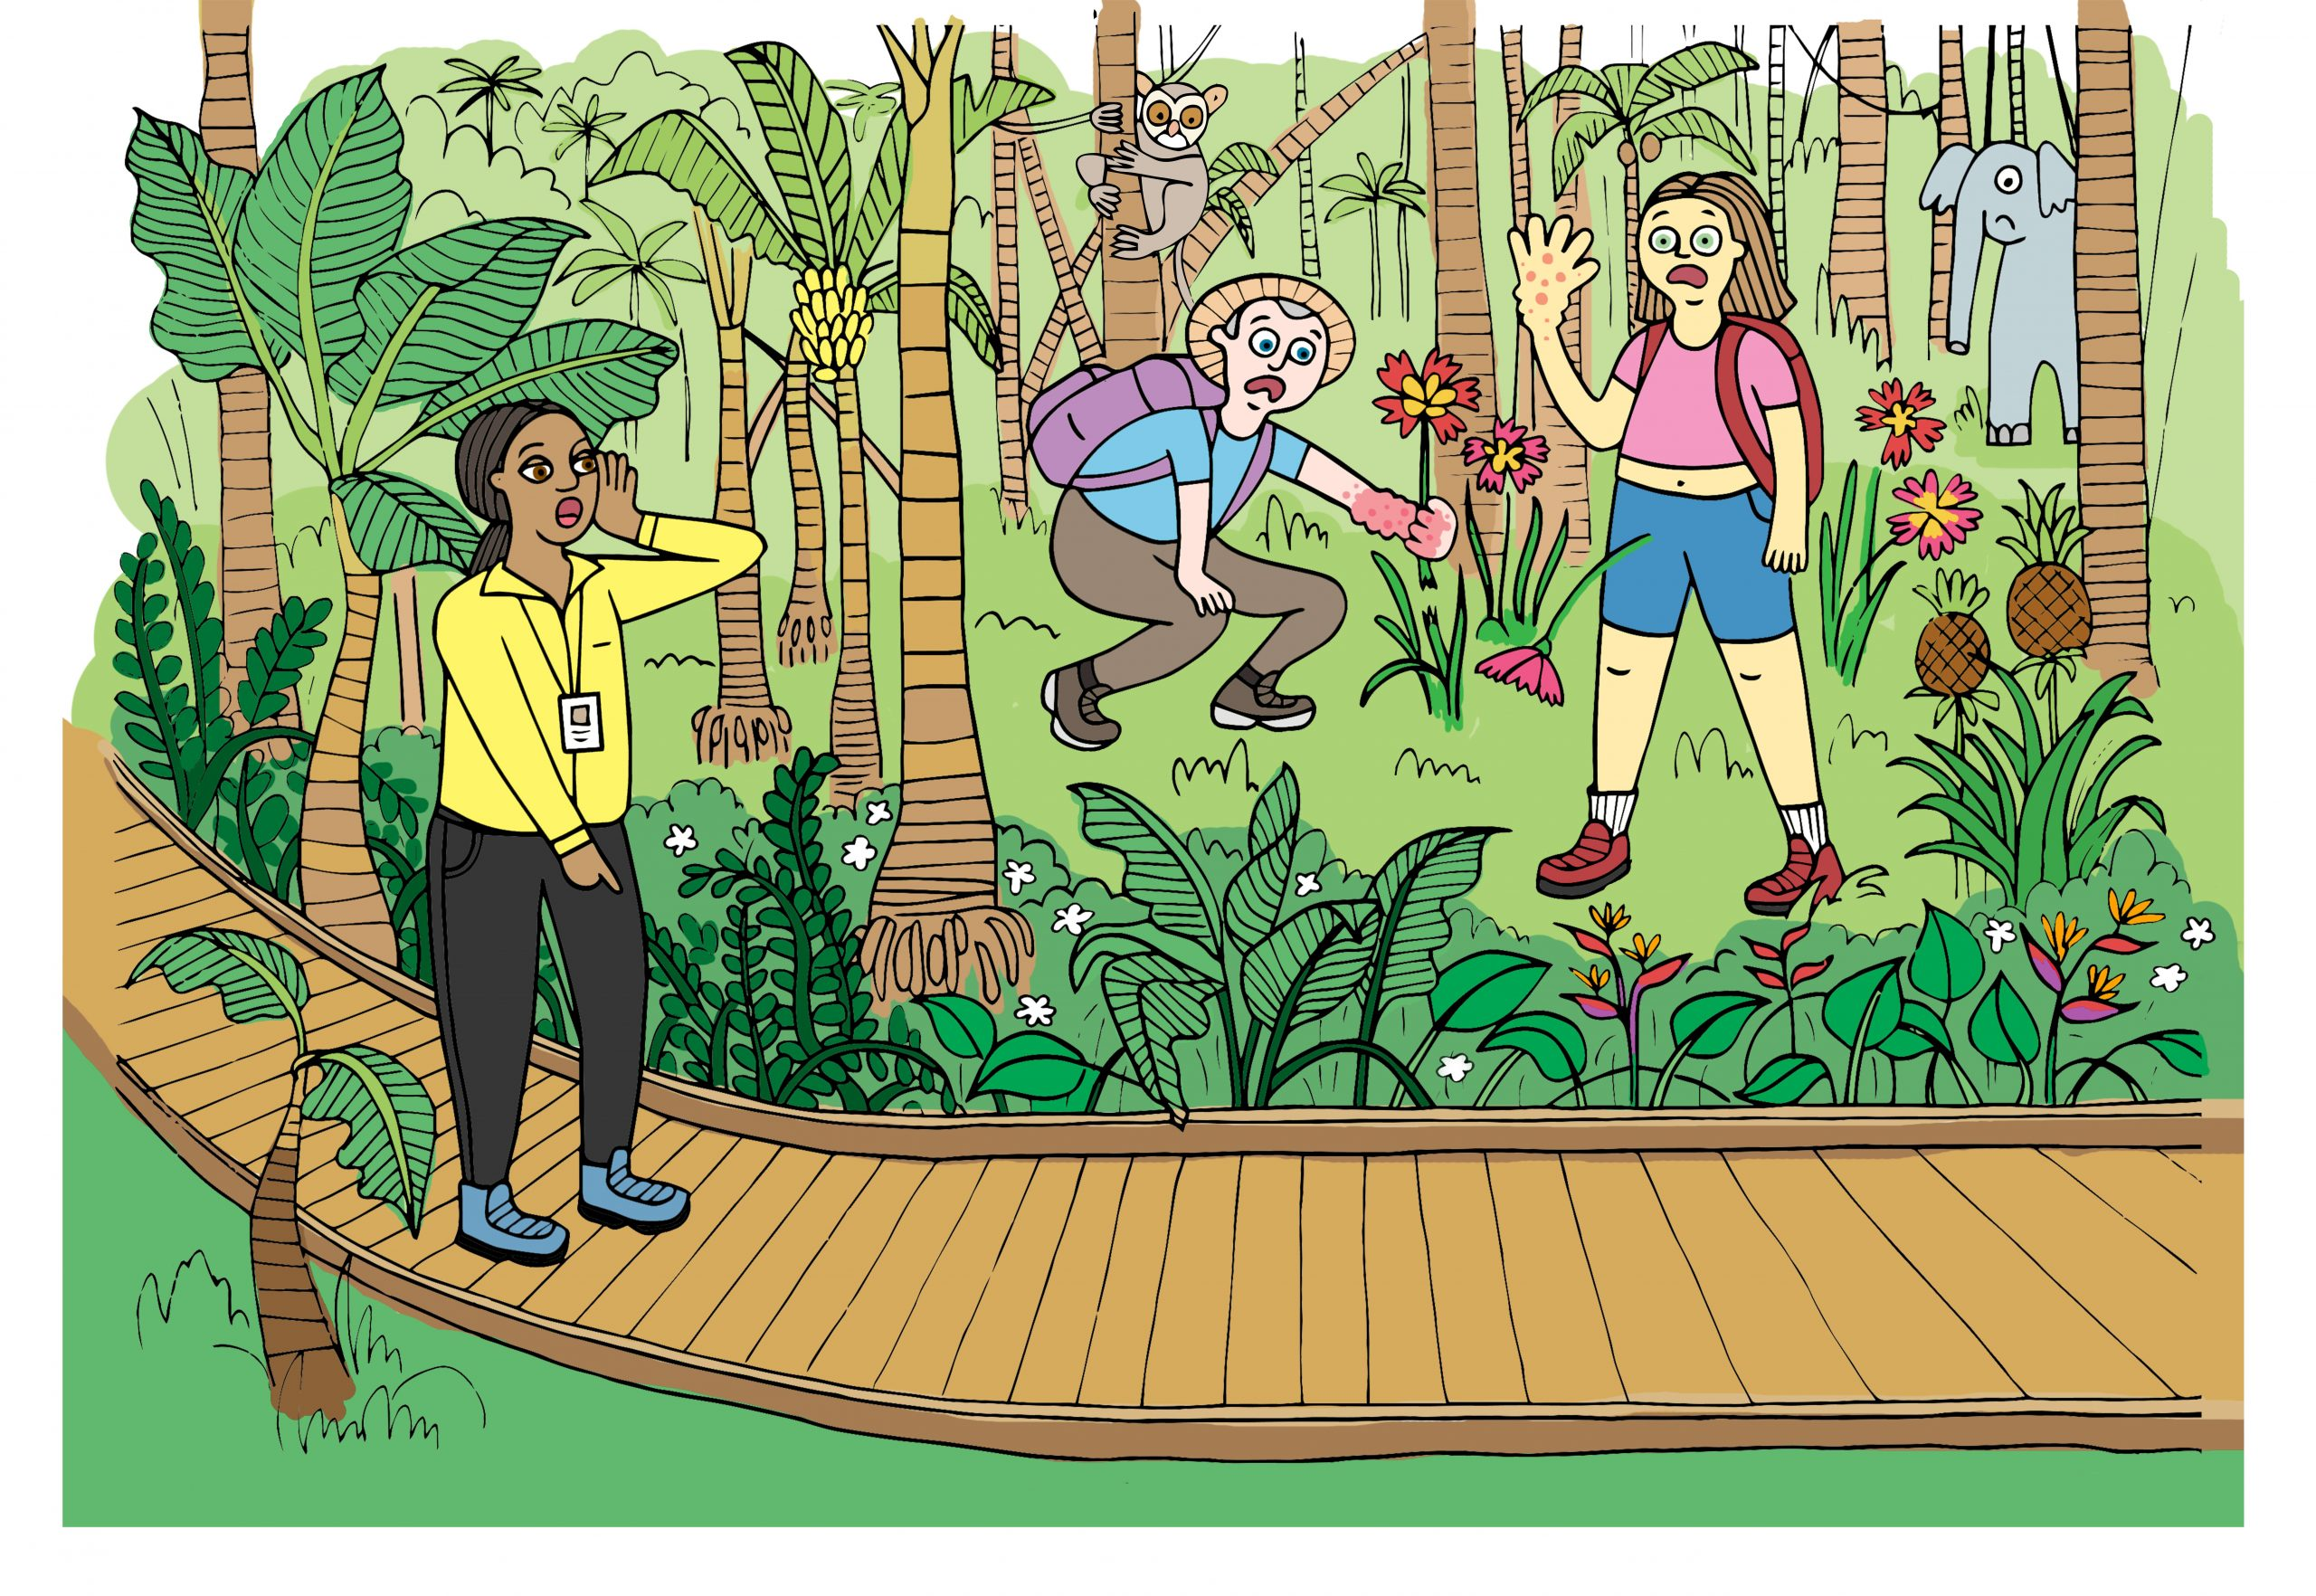 Be aware that some tropical plants are stinging or poisonous, avoid touching what you don't know.